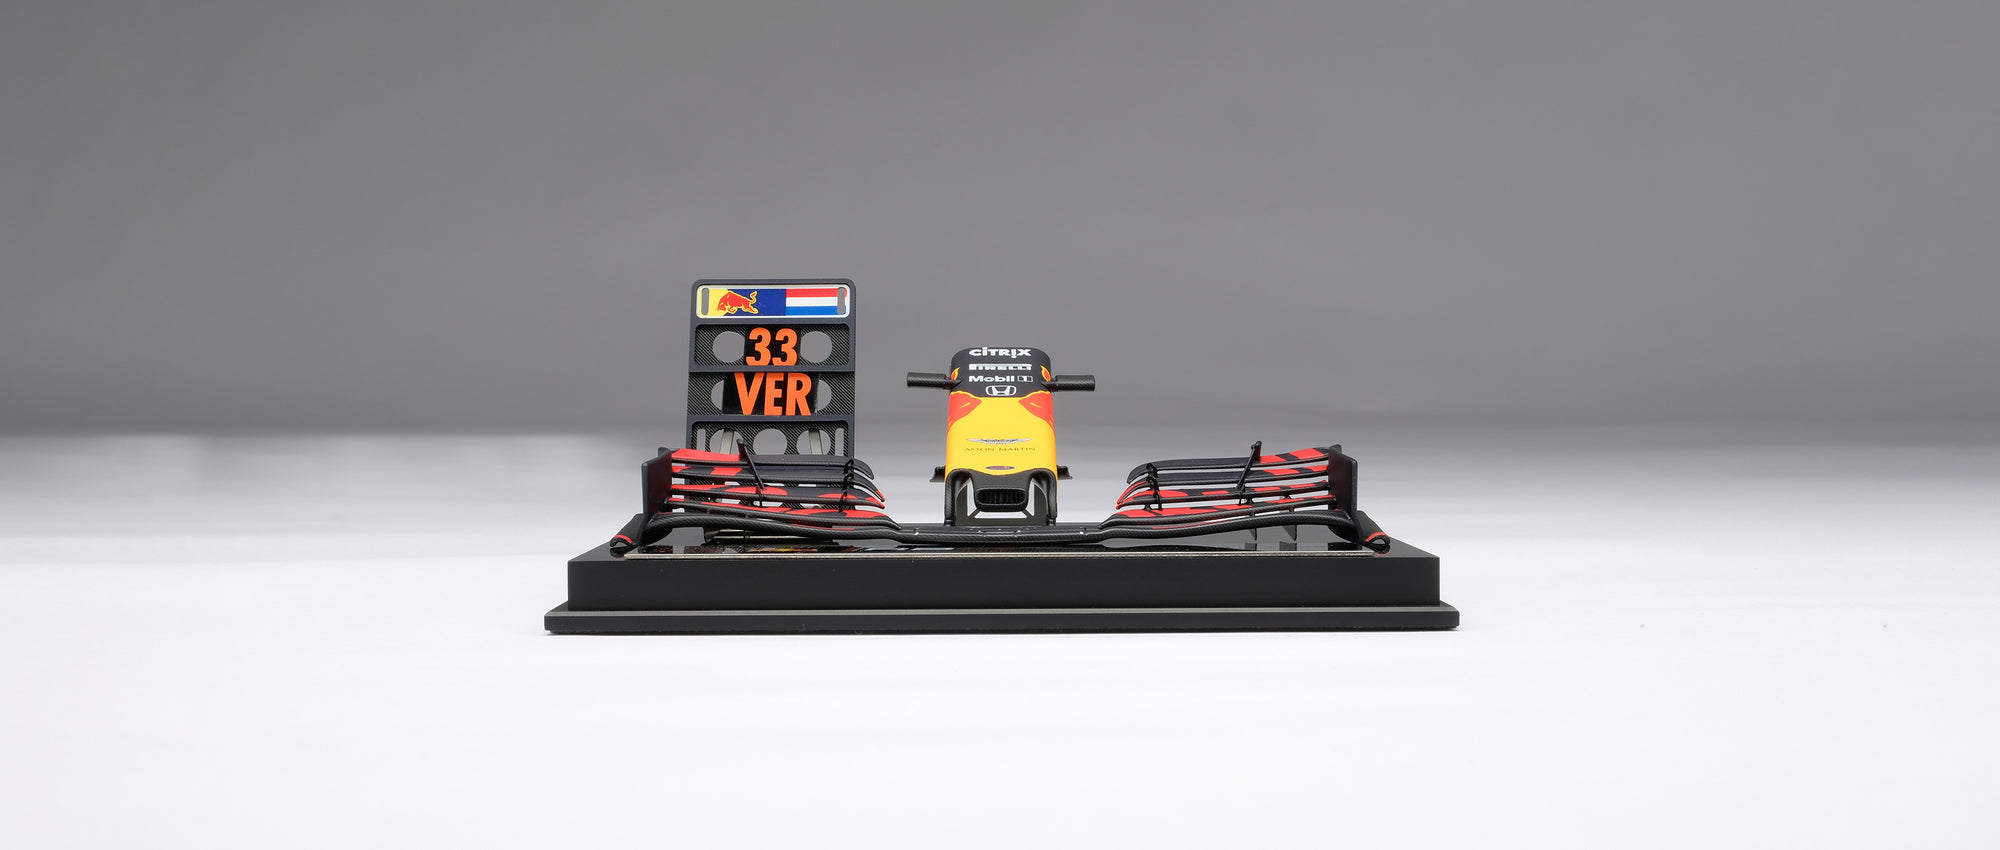 Aston Martin Red Bull Racing RB15 Nosecone - Verstappen